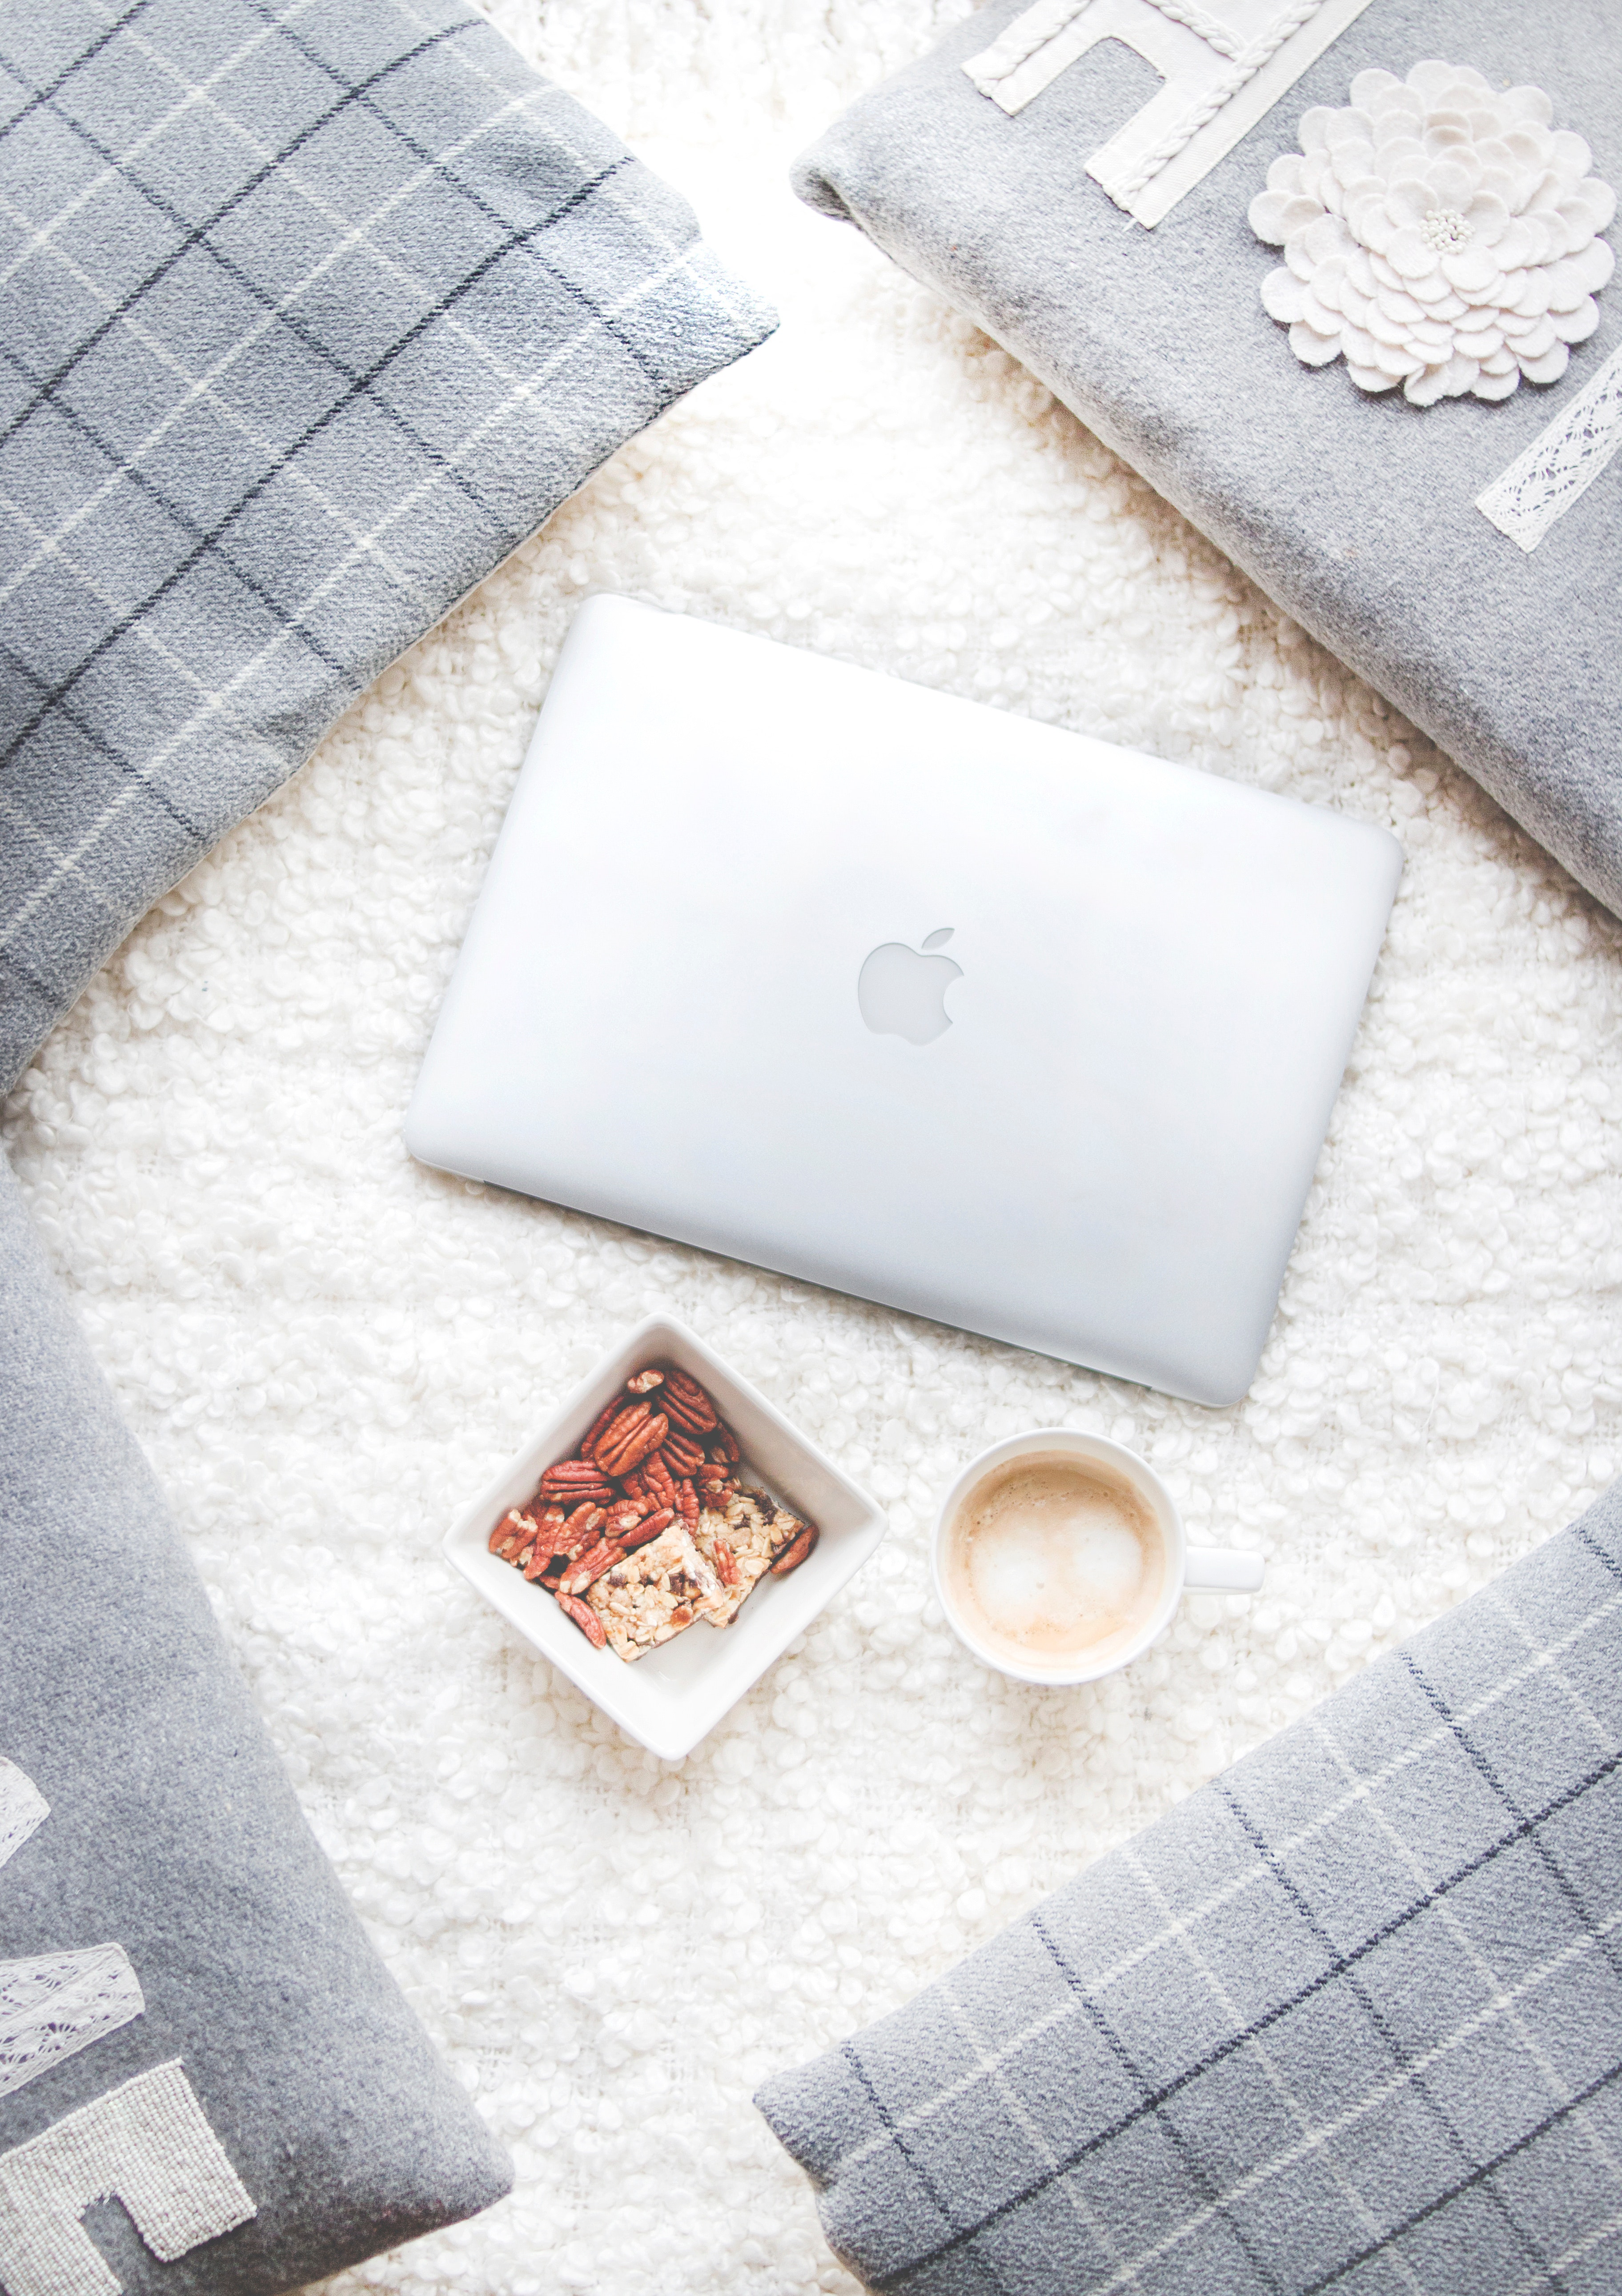 Flatlay Photography of Macbook and Snacks, Cappuccino, Coffee, Design, Empty, HQ Photo